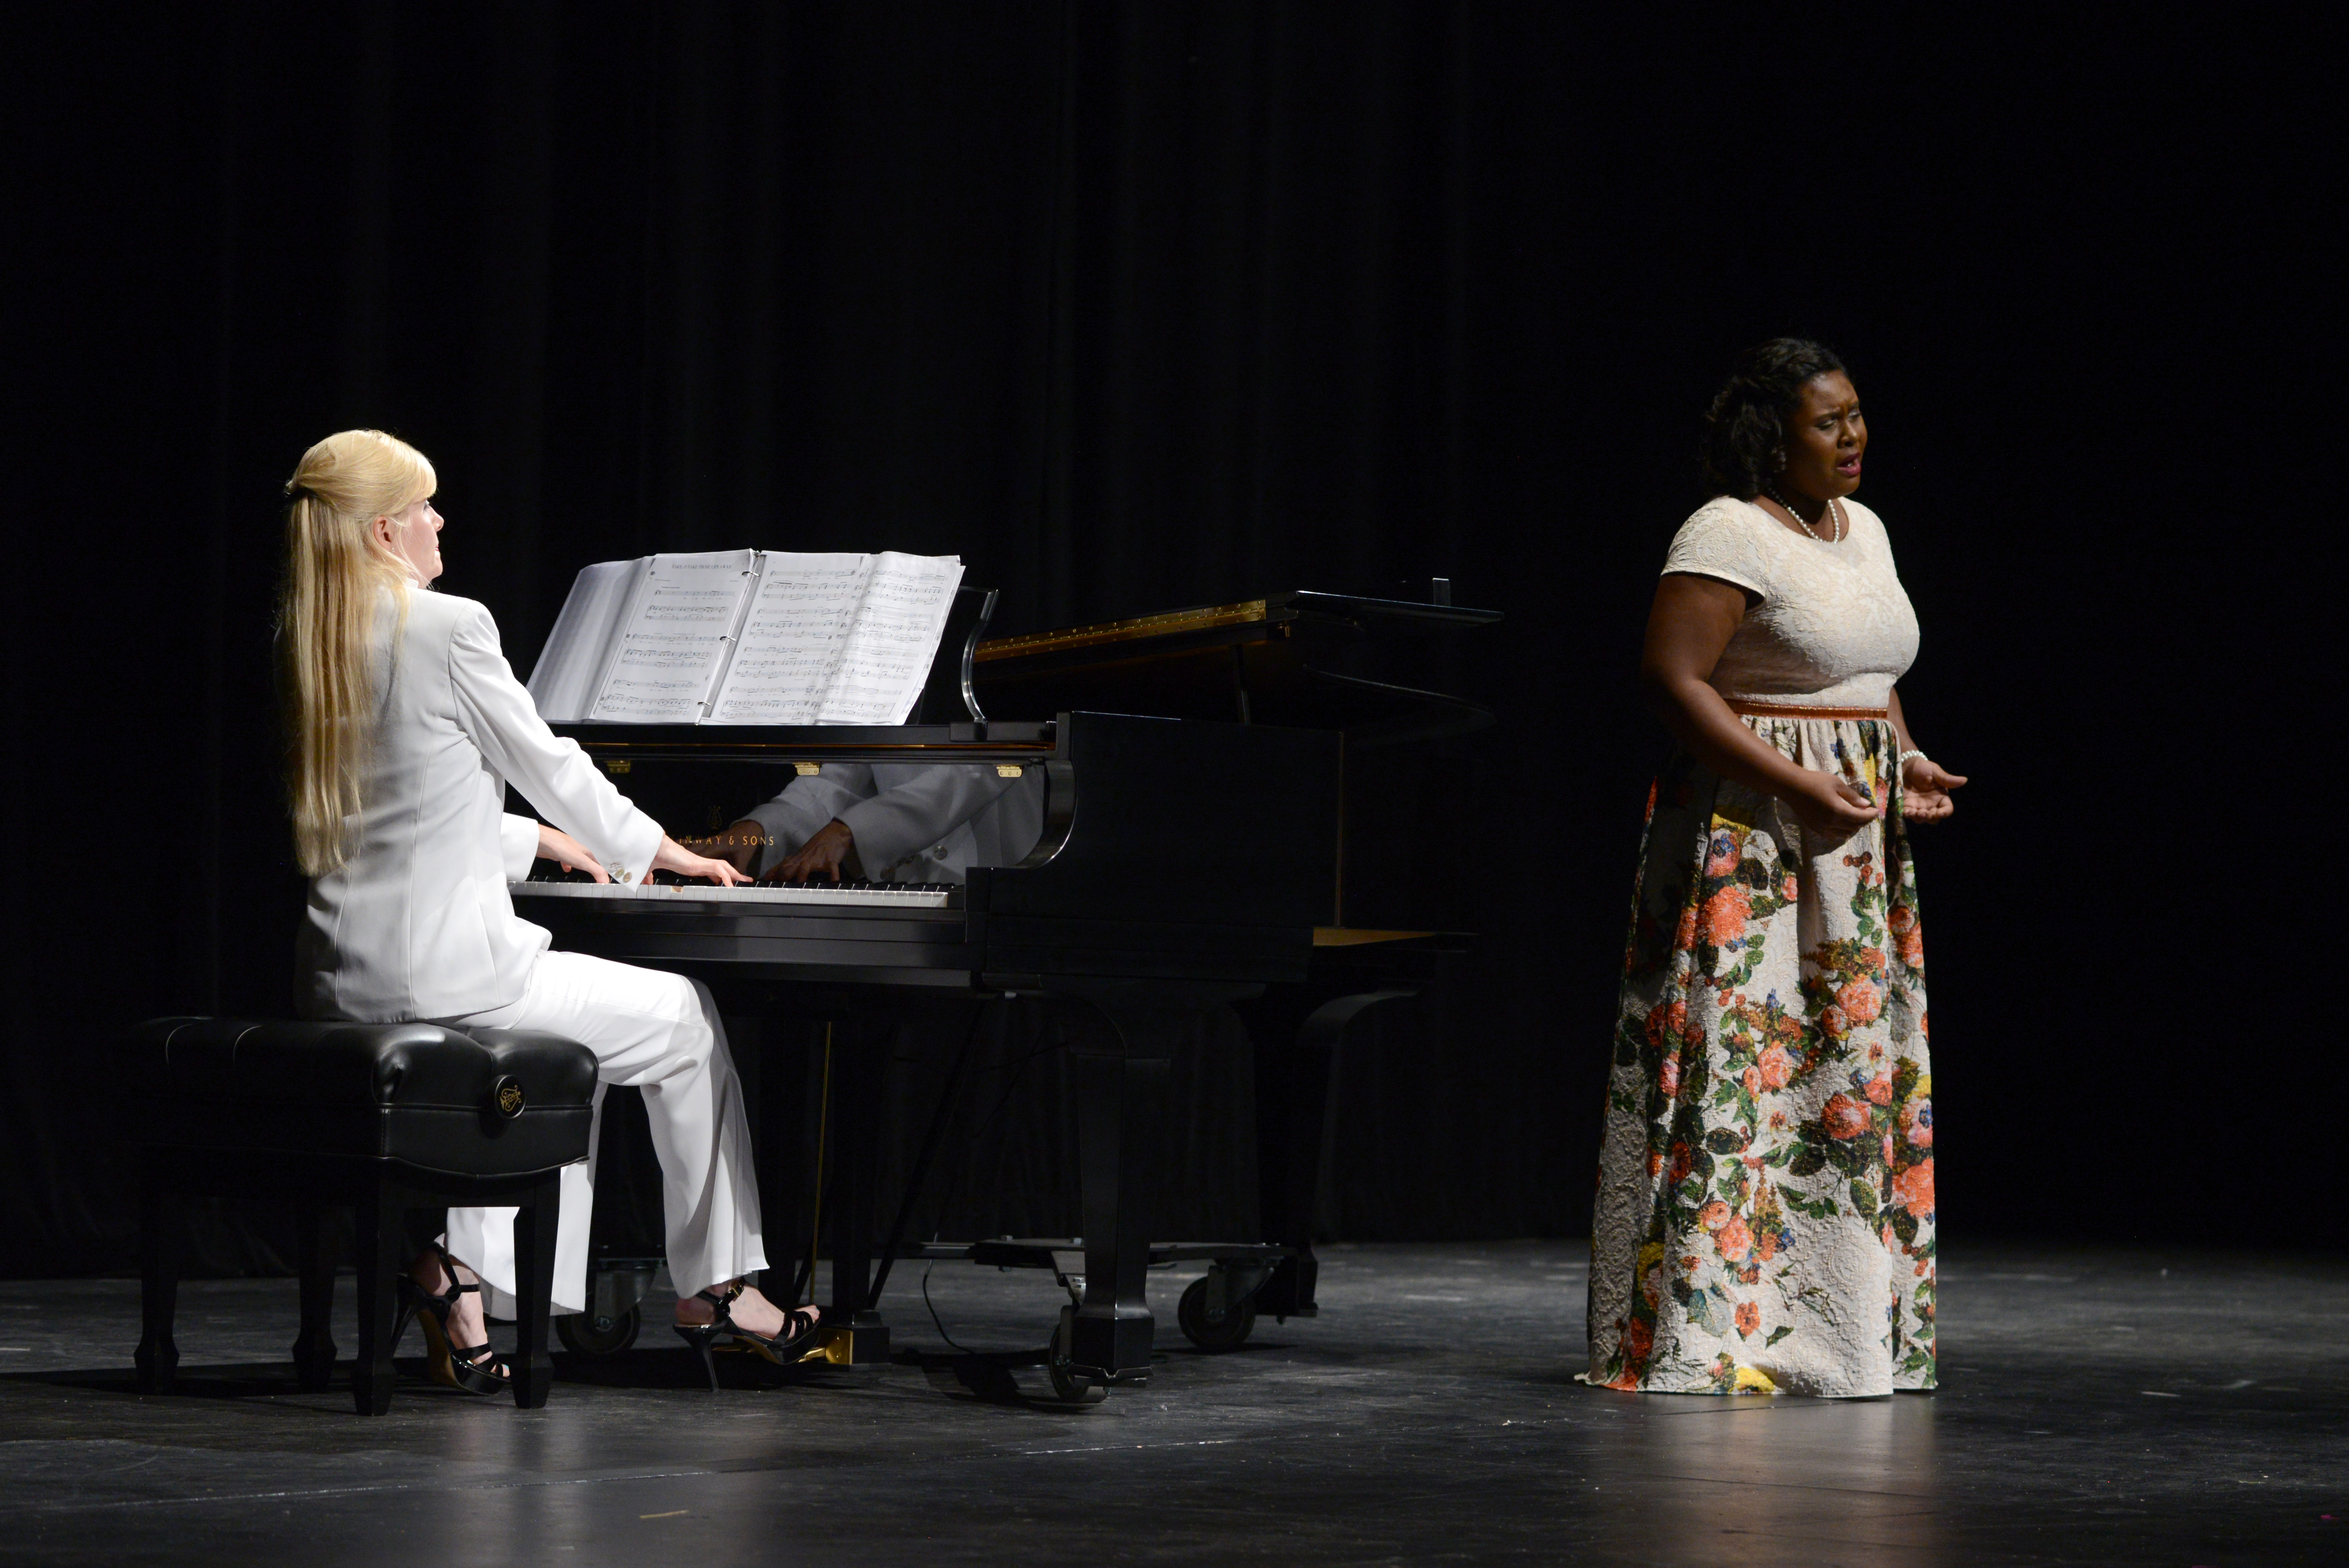 Lindsey Reynolds gives her senior recital, accompanied by Anne Sumich.